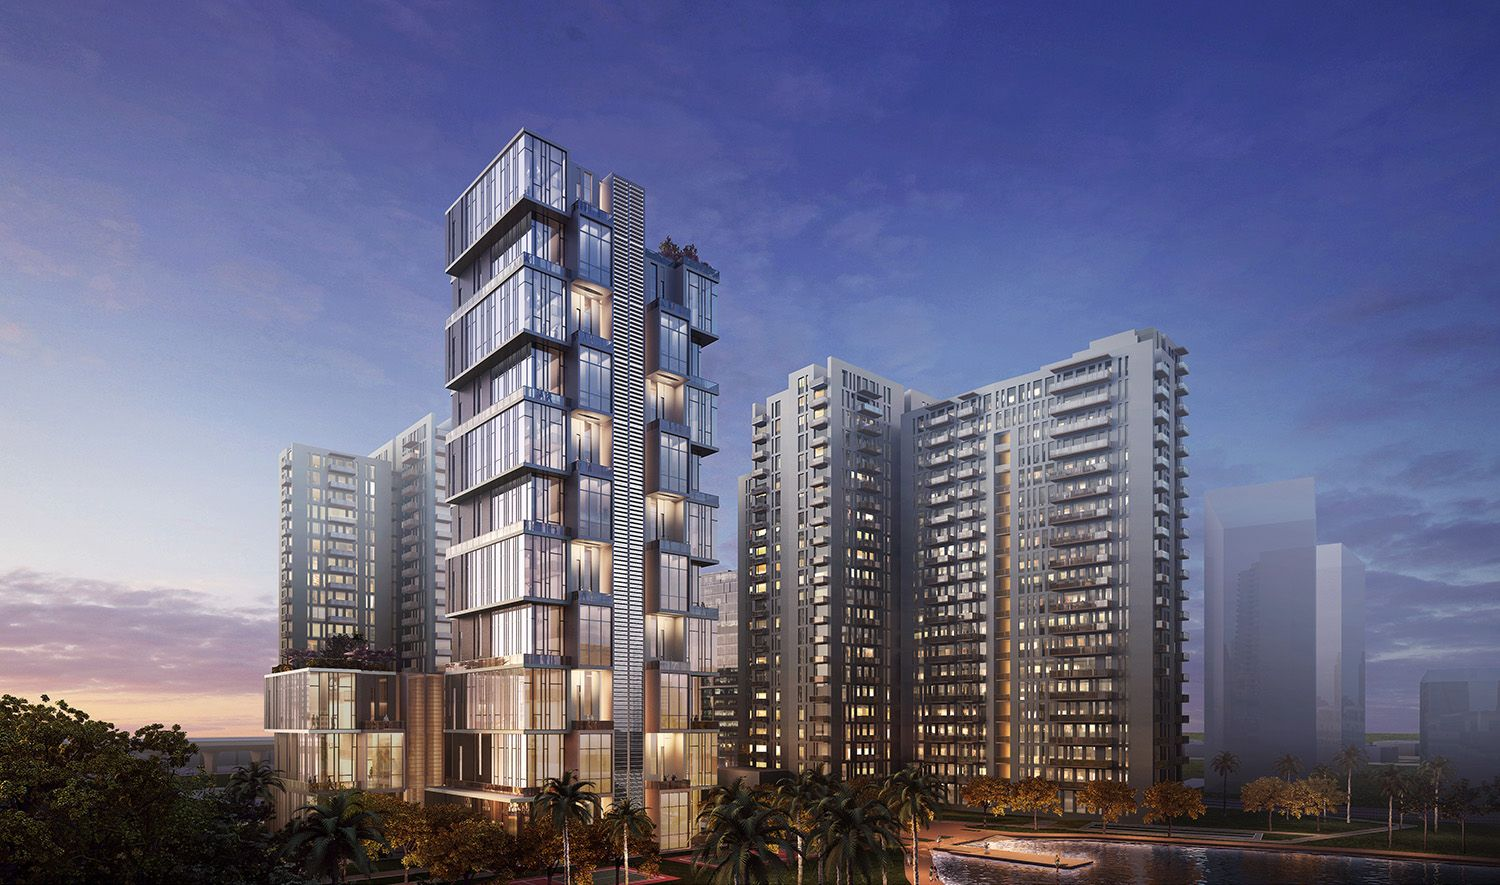 HOK Tall Buildings Bangalore india, Master plan and Building